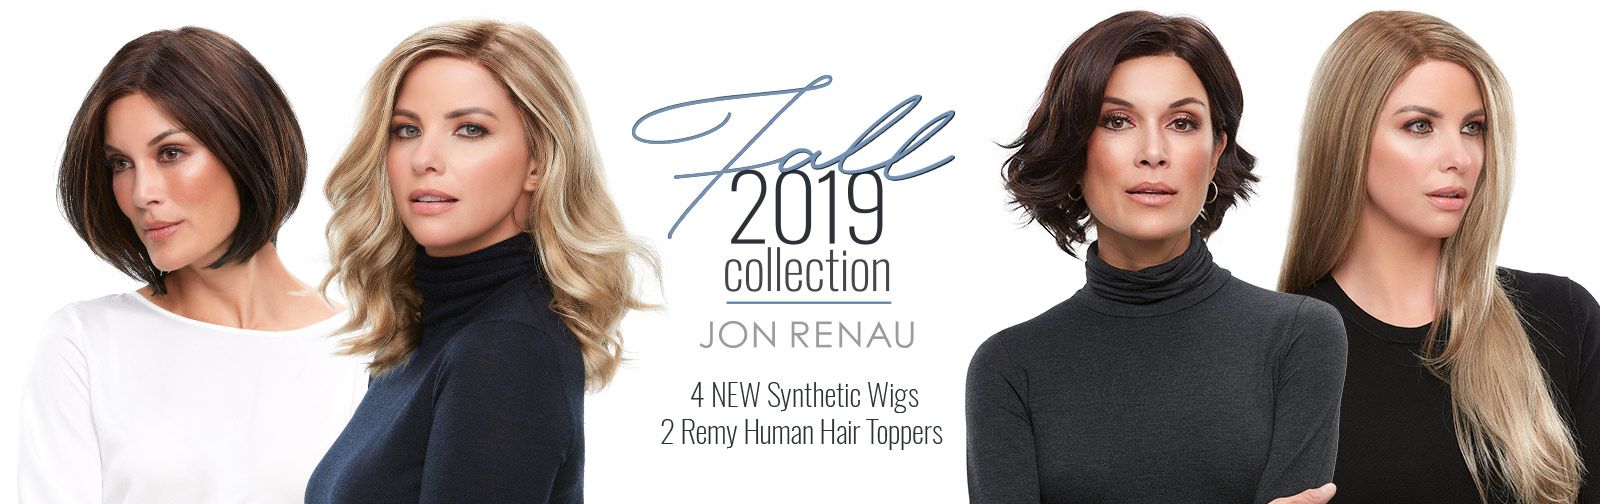 Jon Renau Fall 2019 Collection